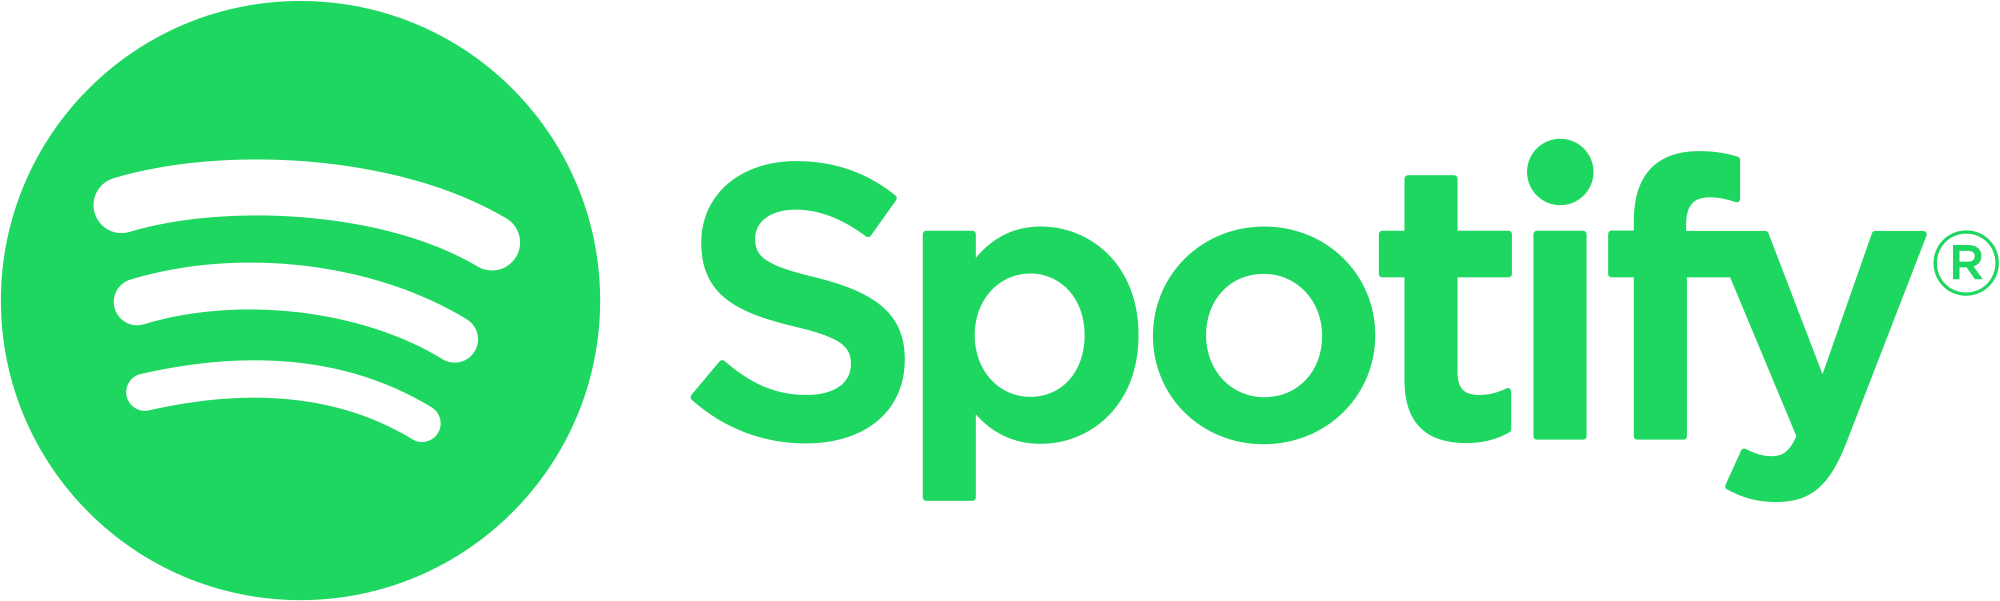 Spotify logo transparent png. Green stickpng download